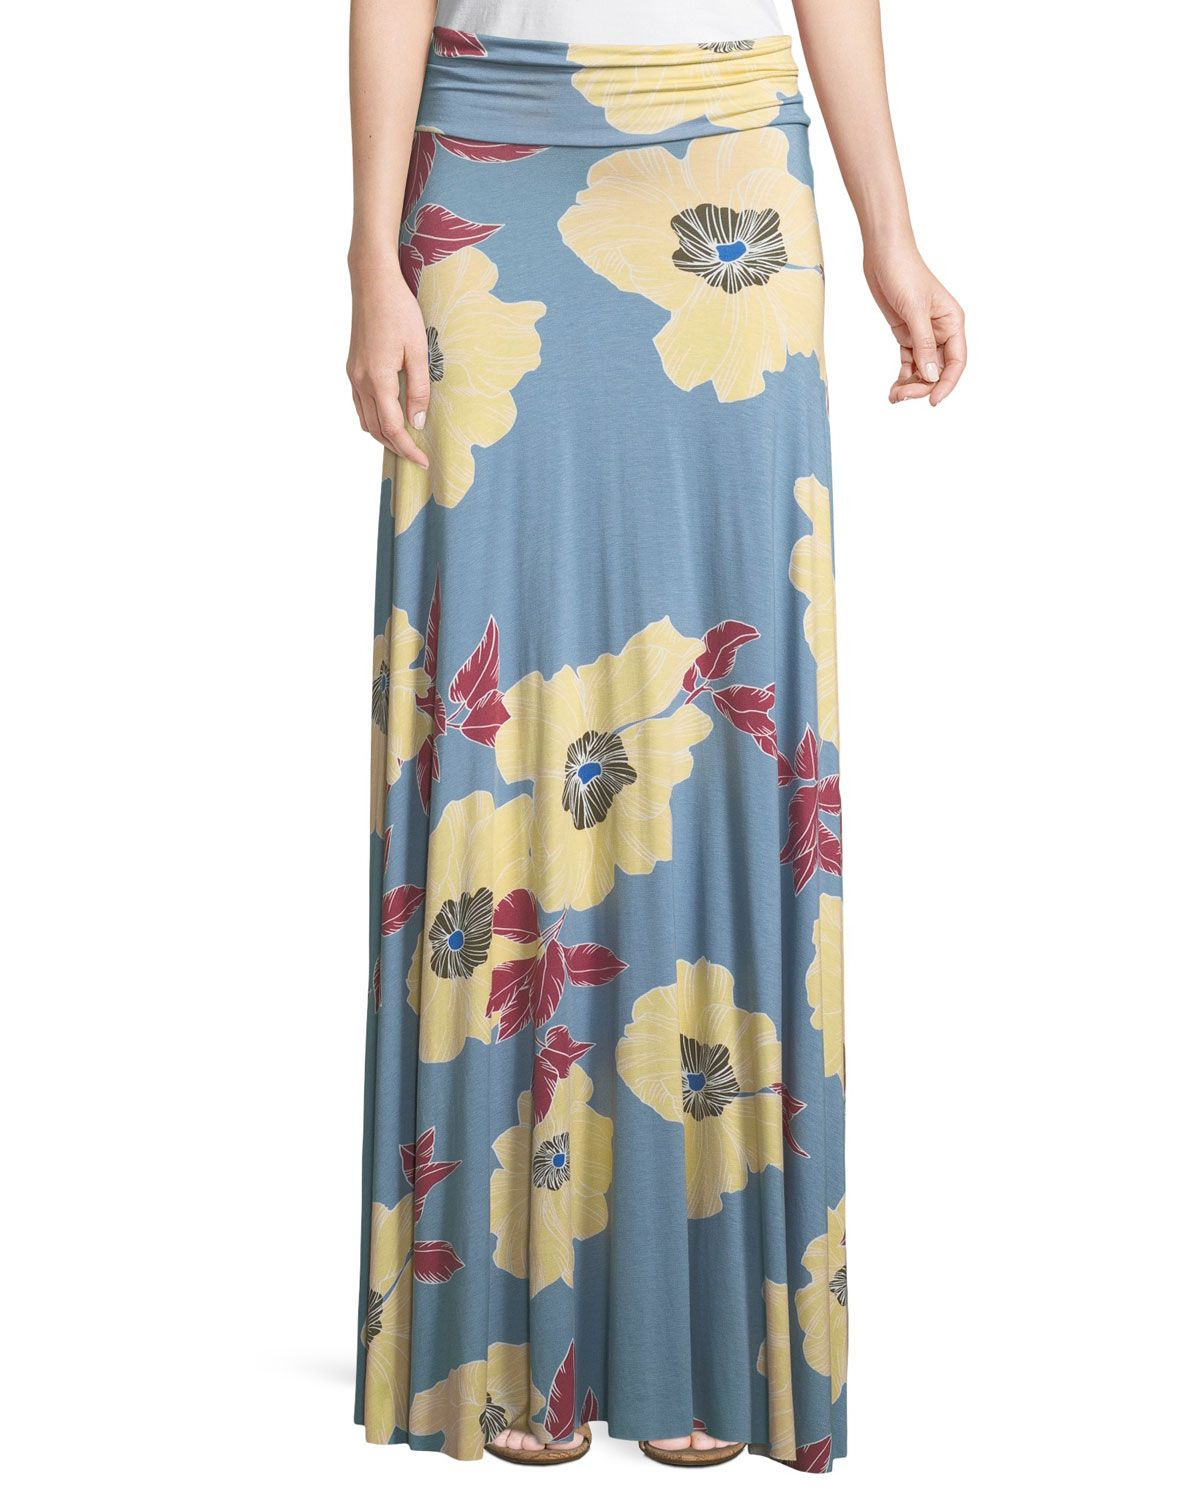 Floral Print Jersey Maxi Skirt Plus Size In Bloom Spodnica